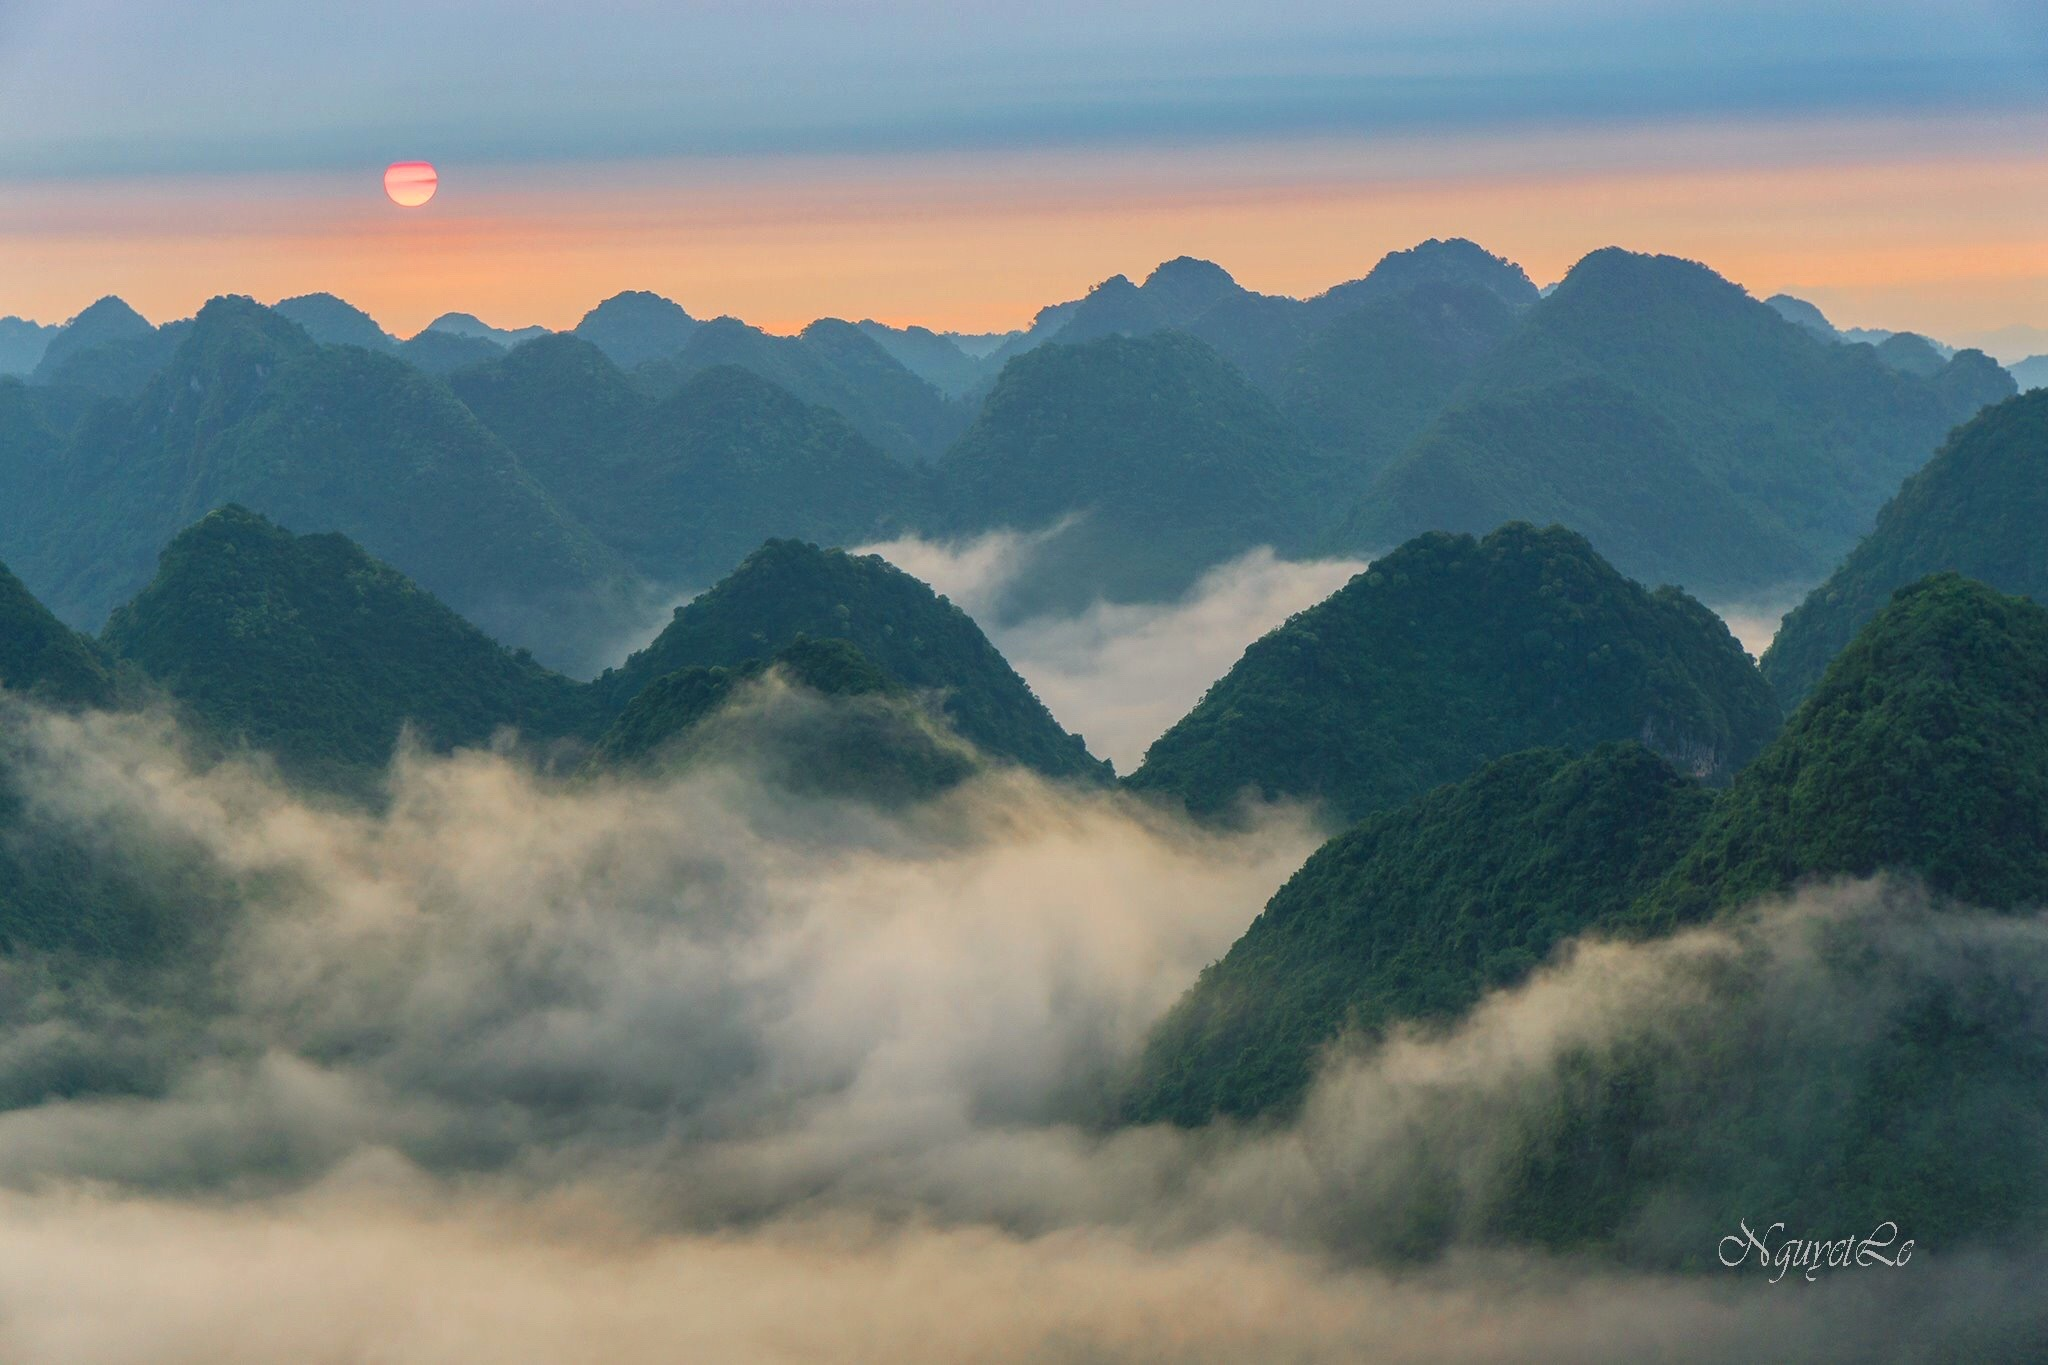 Sunrise beyond mountain and clouds  by Nguyet Le